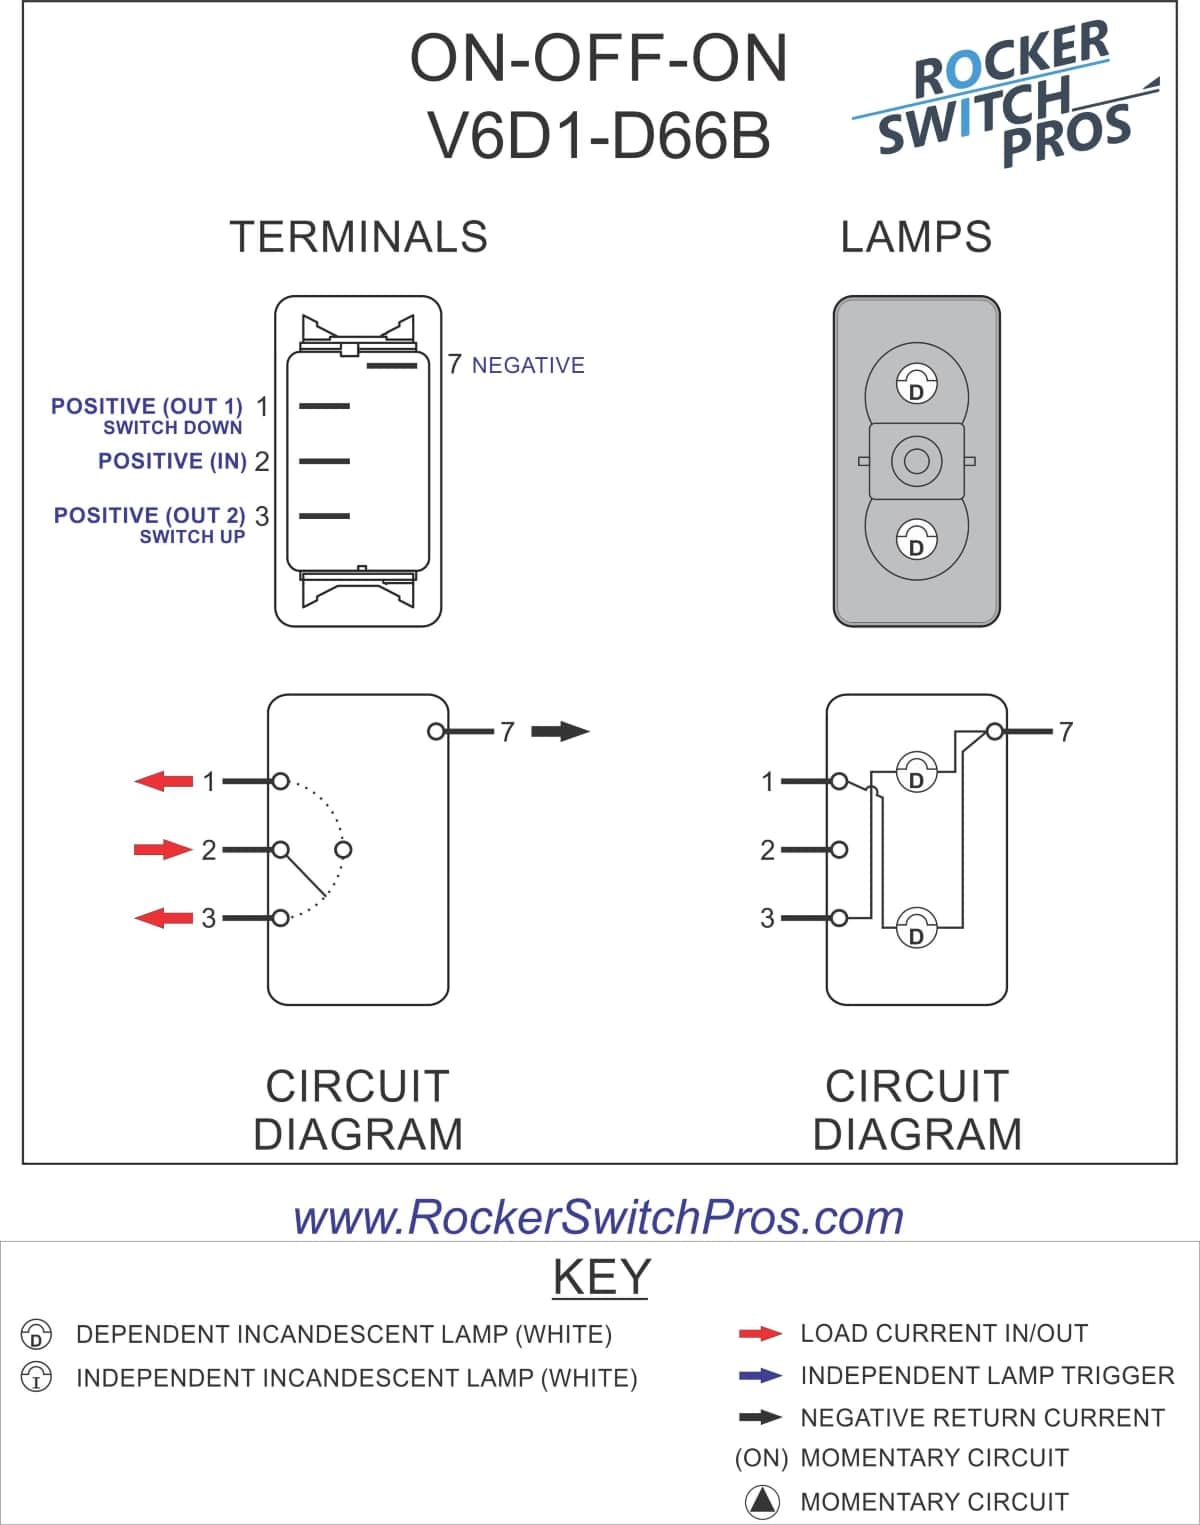 12v on off toggle switch wiring diagram 2007 fj cruiser fuse box great installation of rocker 3 prong momentary